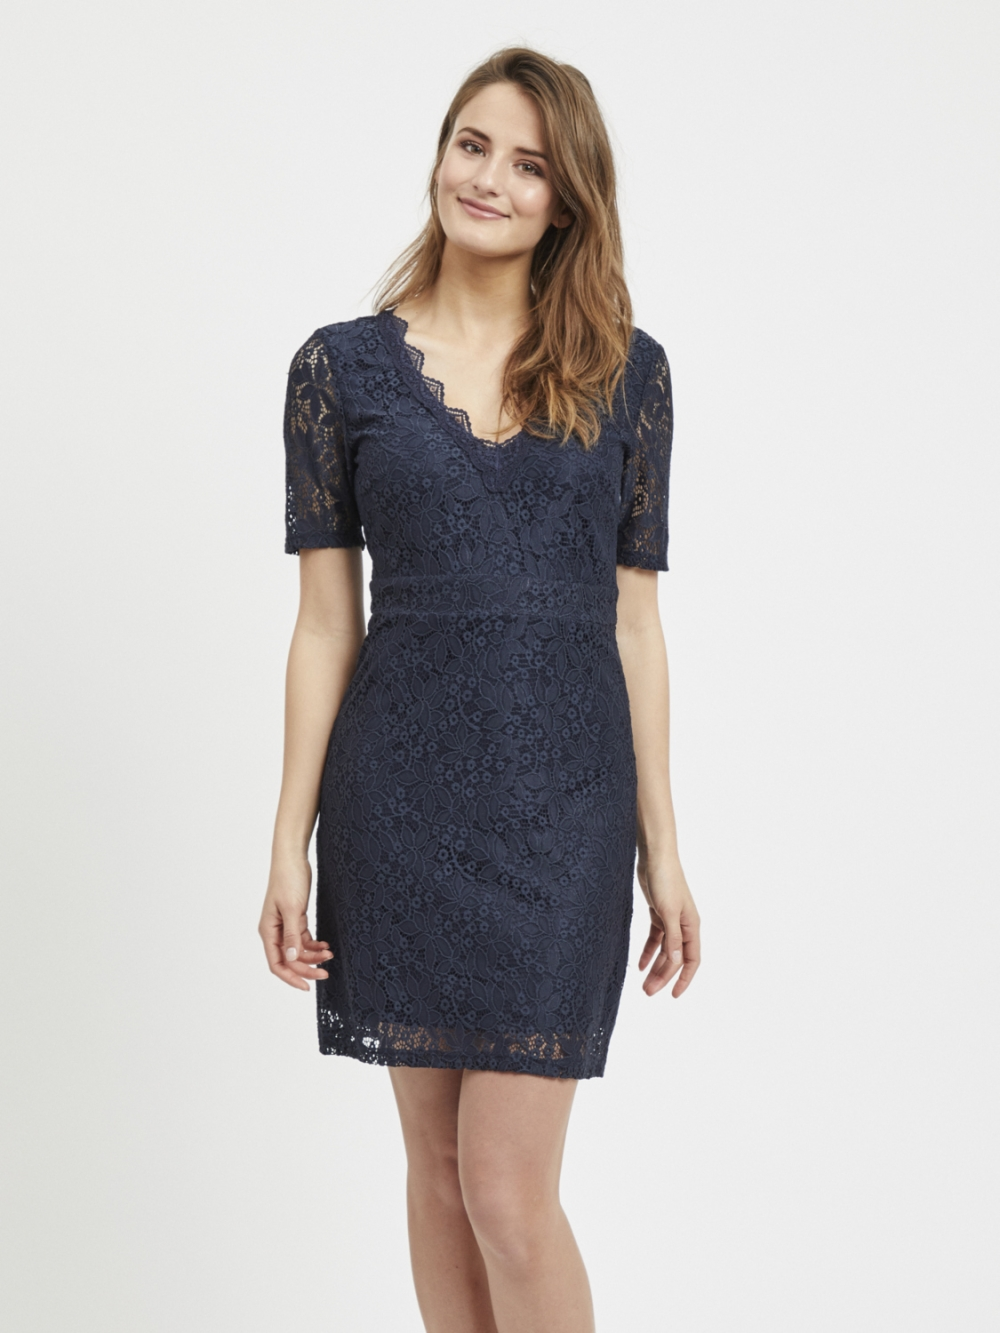 OBJTAYLOR S/S LACE DRESS